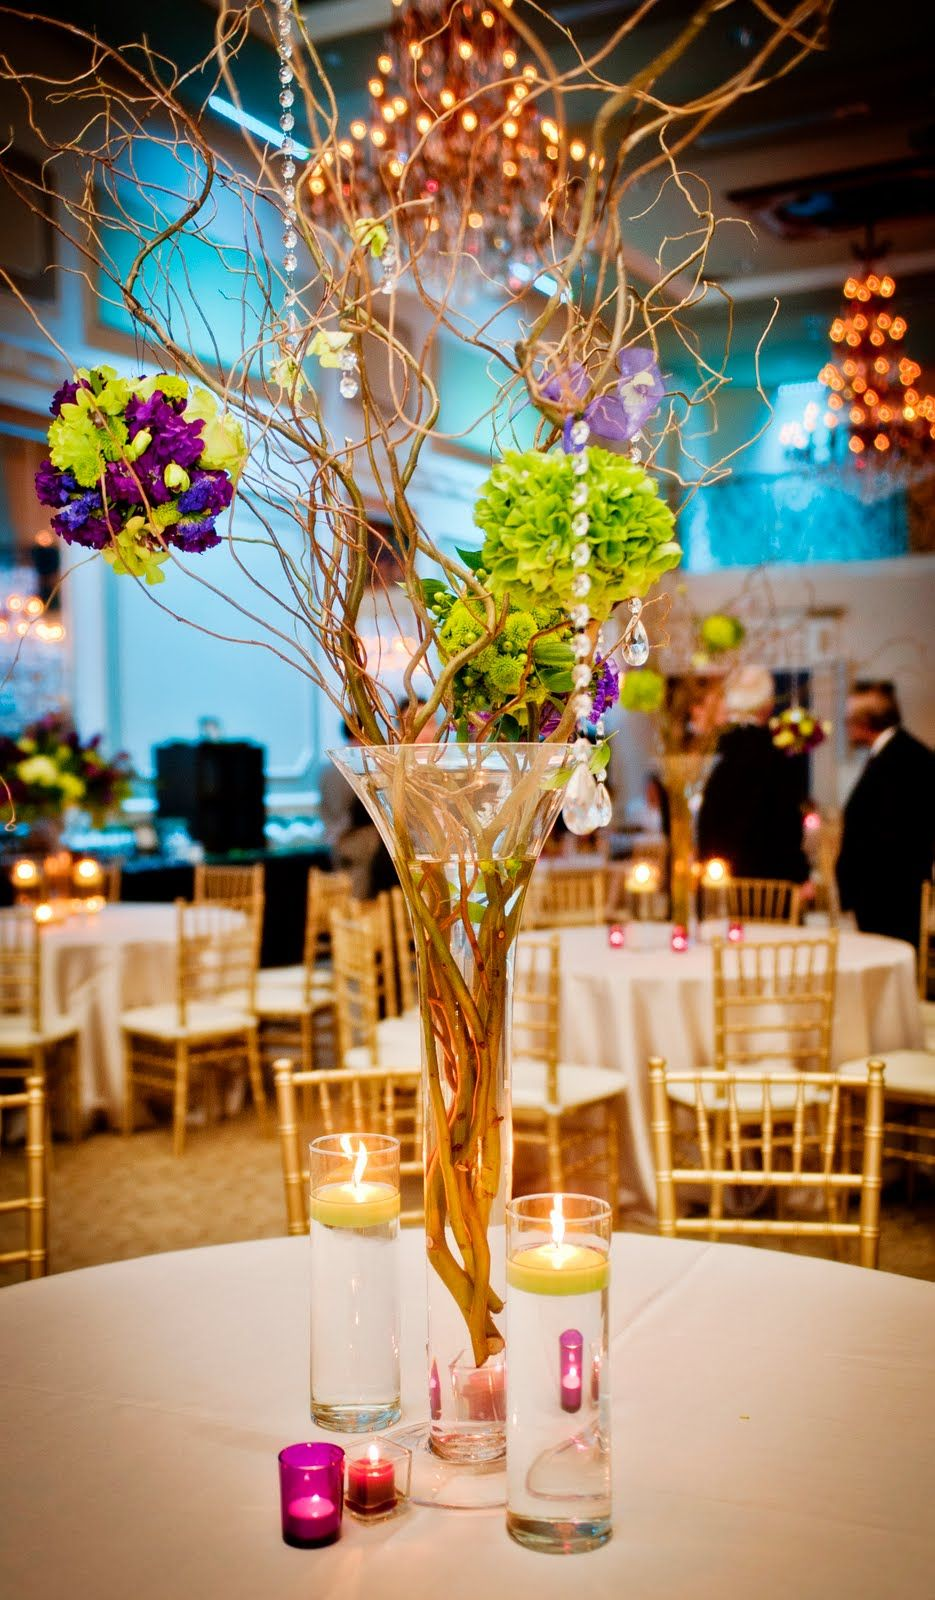 Expressions of love florist april weddings dcoration de table wedding decor for your kenyan wedding venue see wedding lighting flowers decor and wedding venue designs wedding decor pictures and wedding table junglespirit Gallery